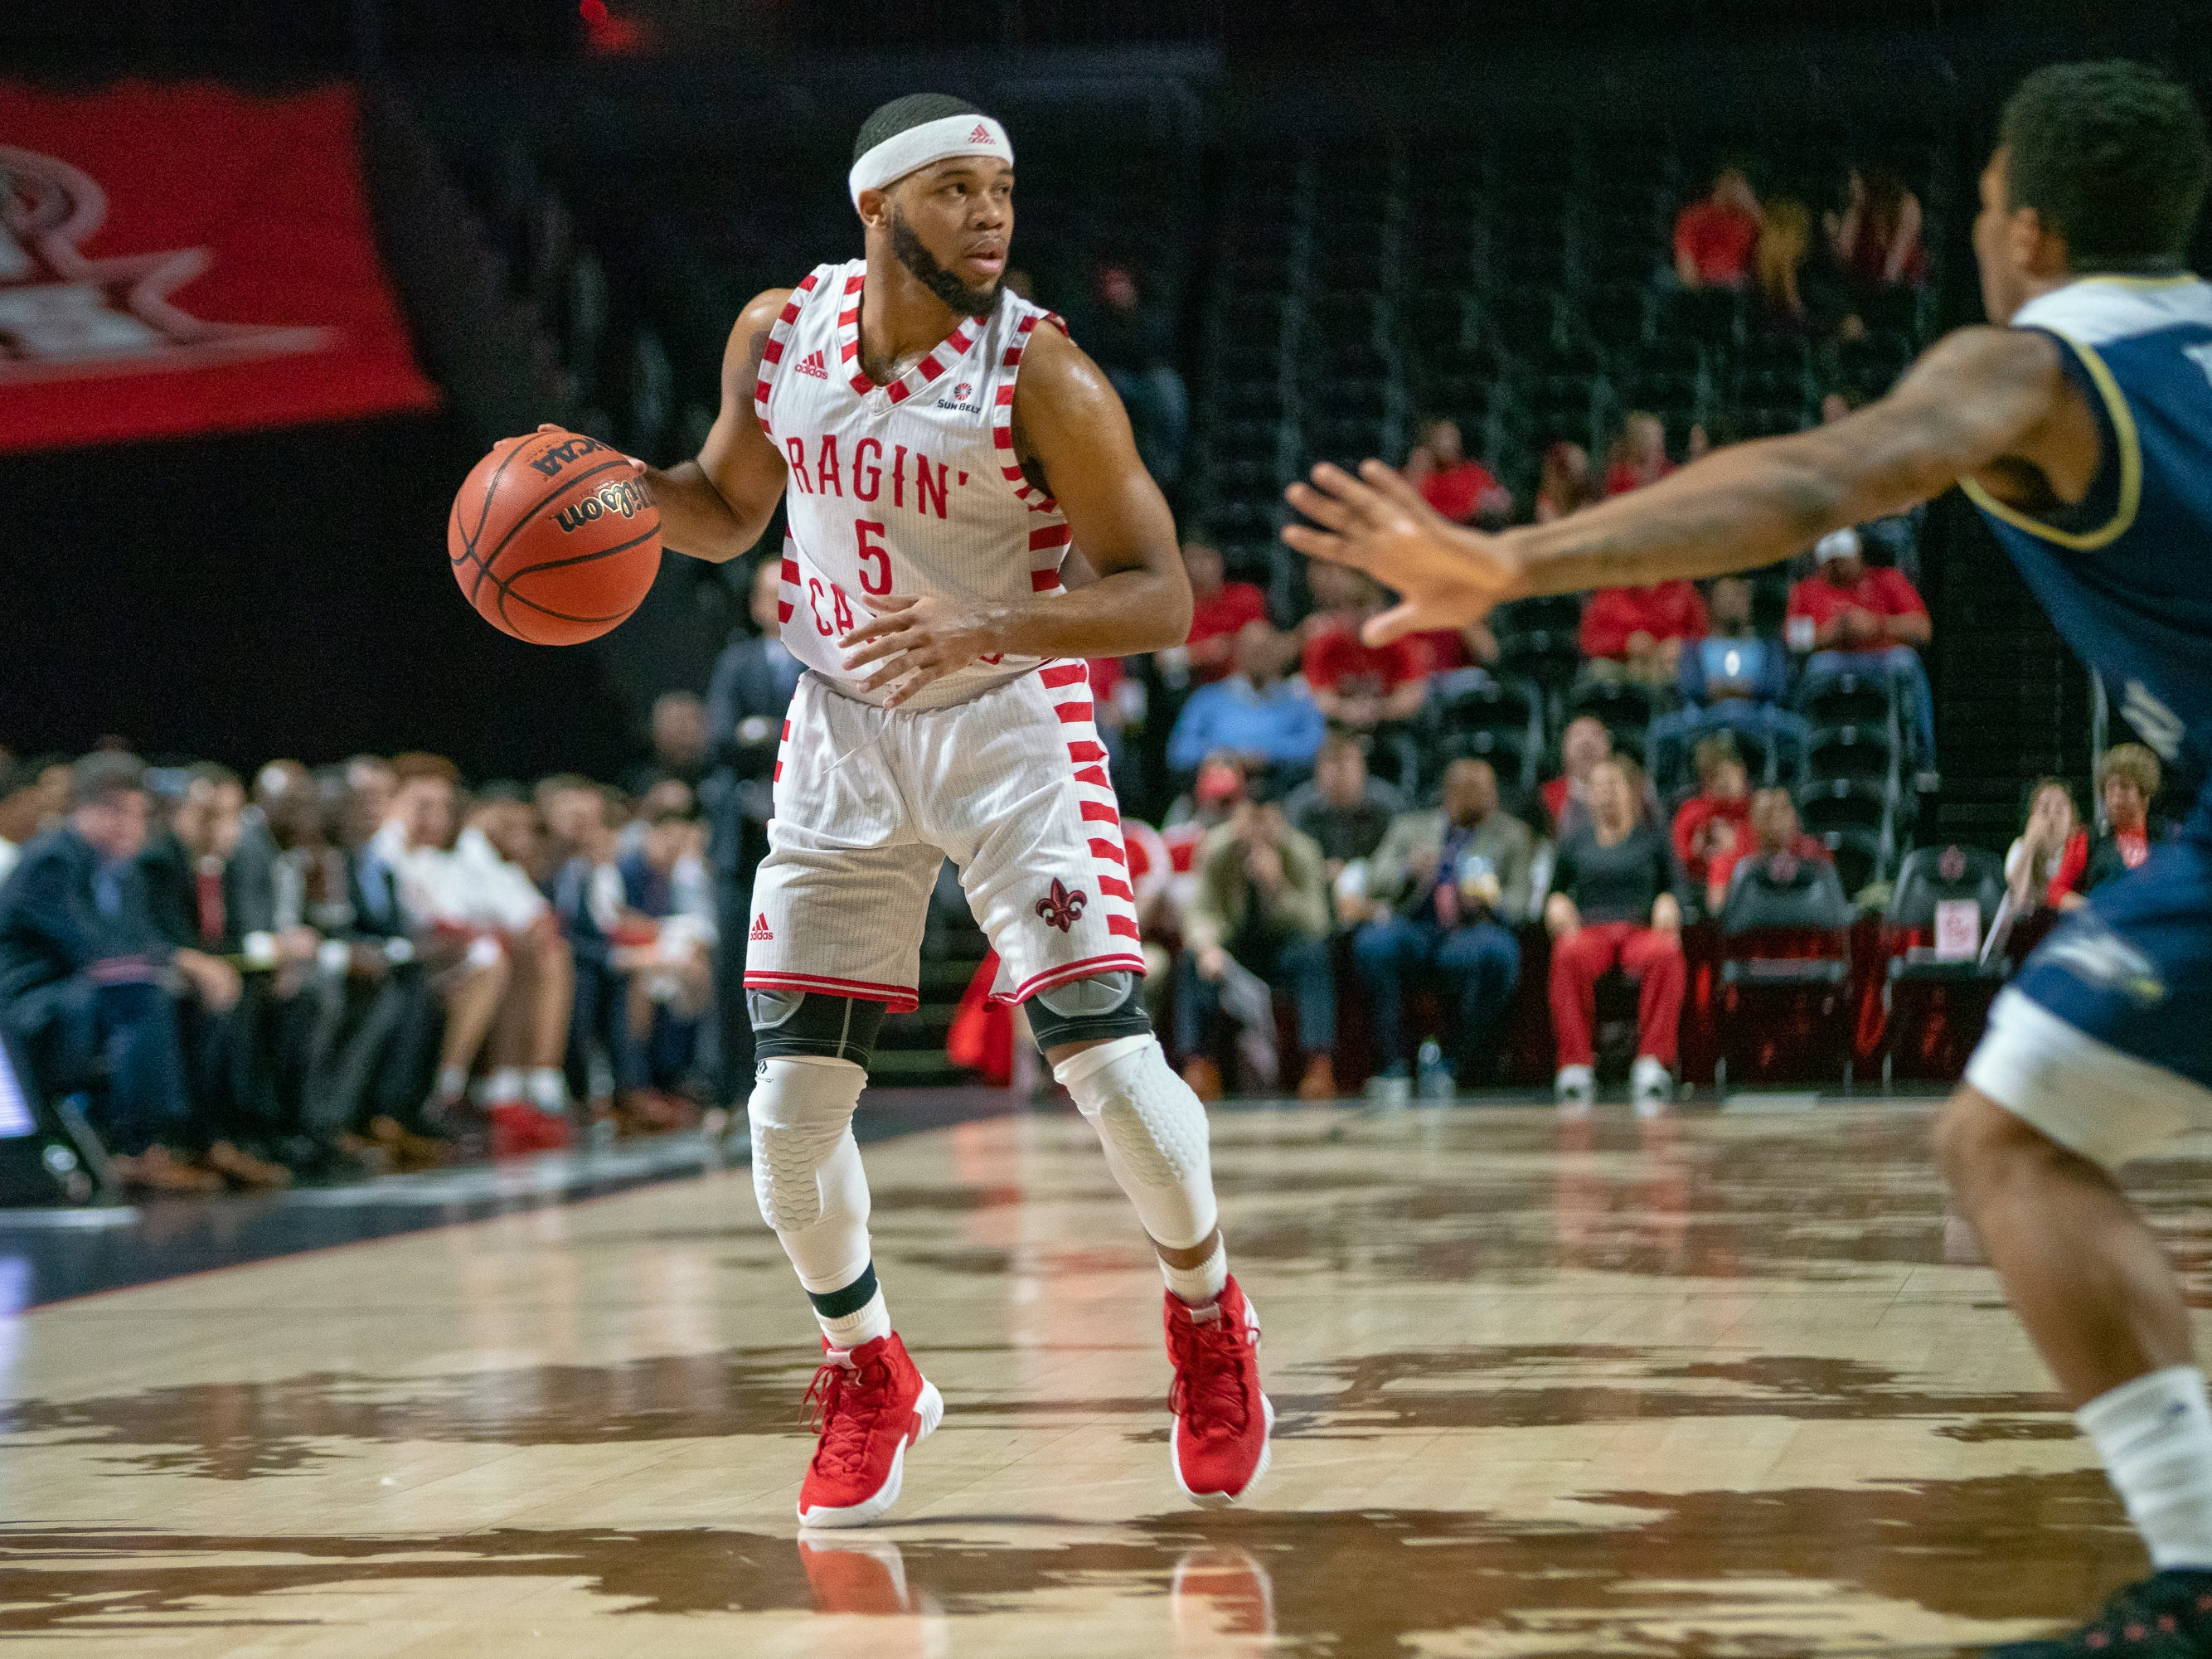 UL's Trajan Wesley handles the ball during the play as the Ragin' Cajuns take on the Georgia Southern Eagles at the Cajundome on Feb. 6, 2019.